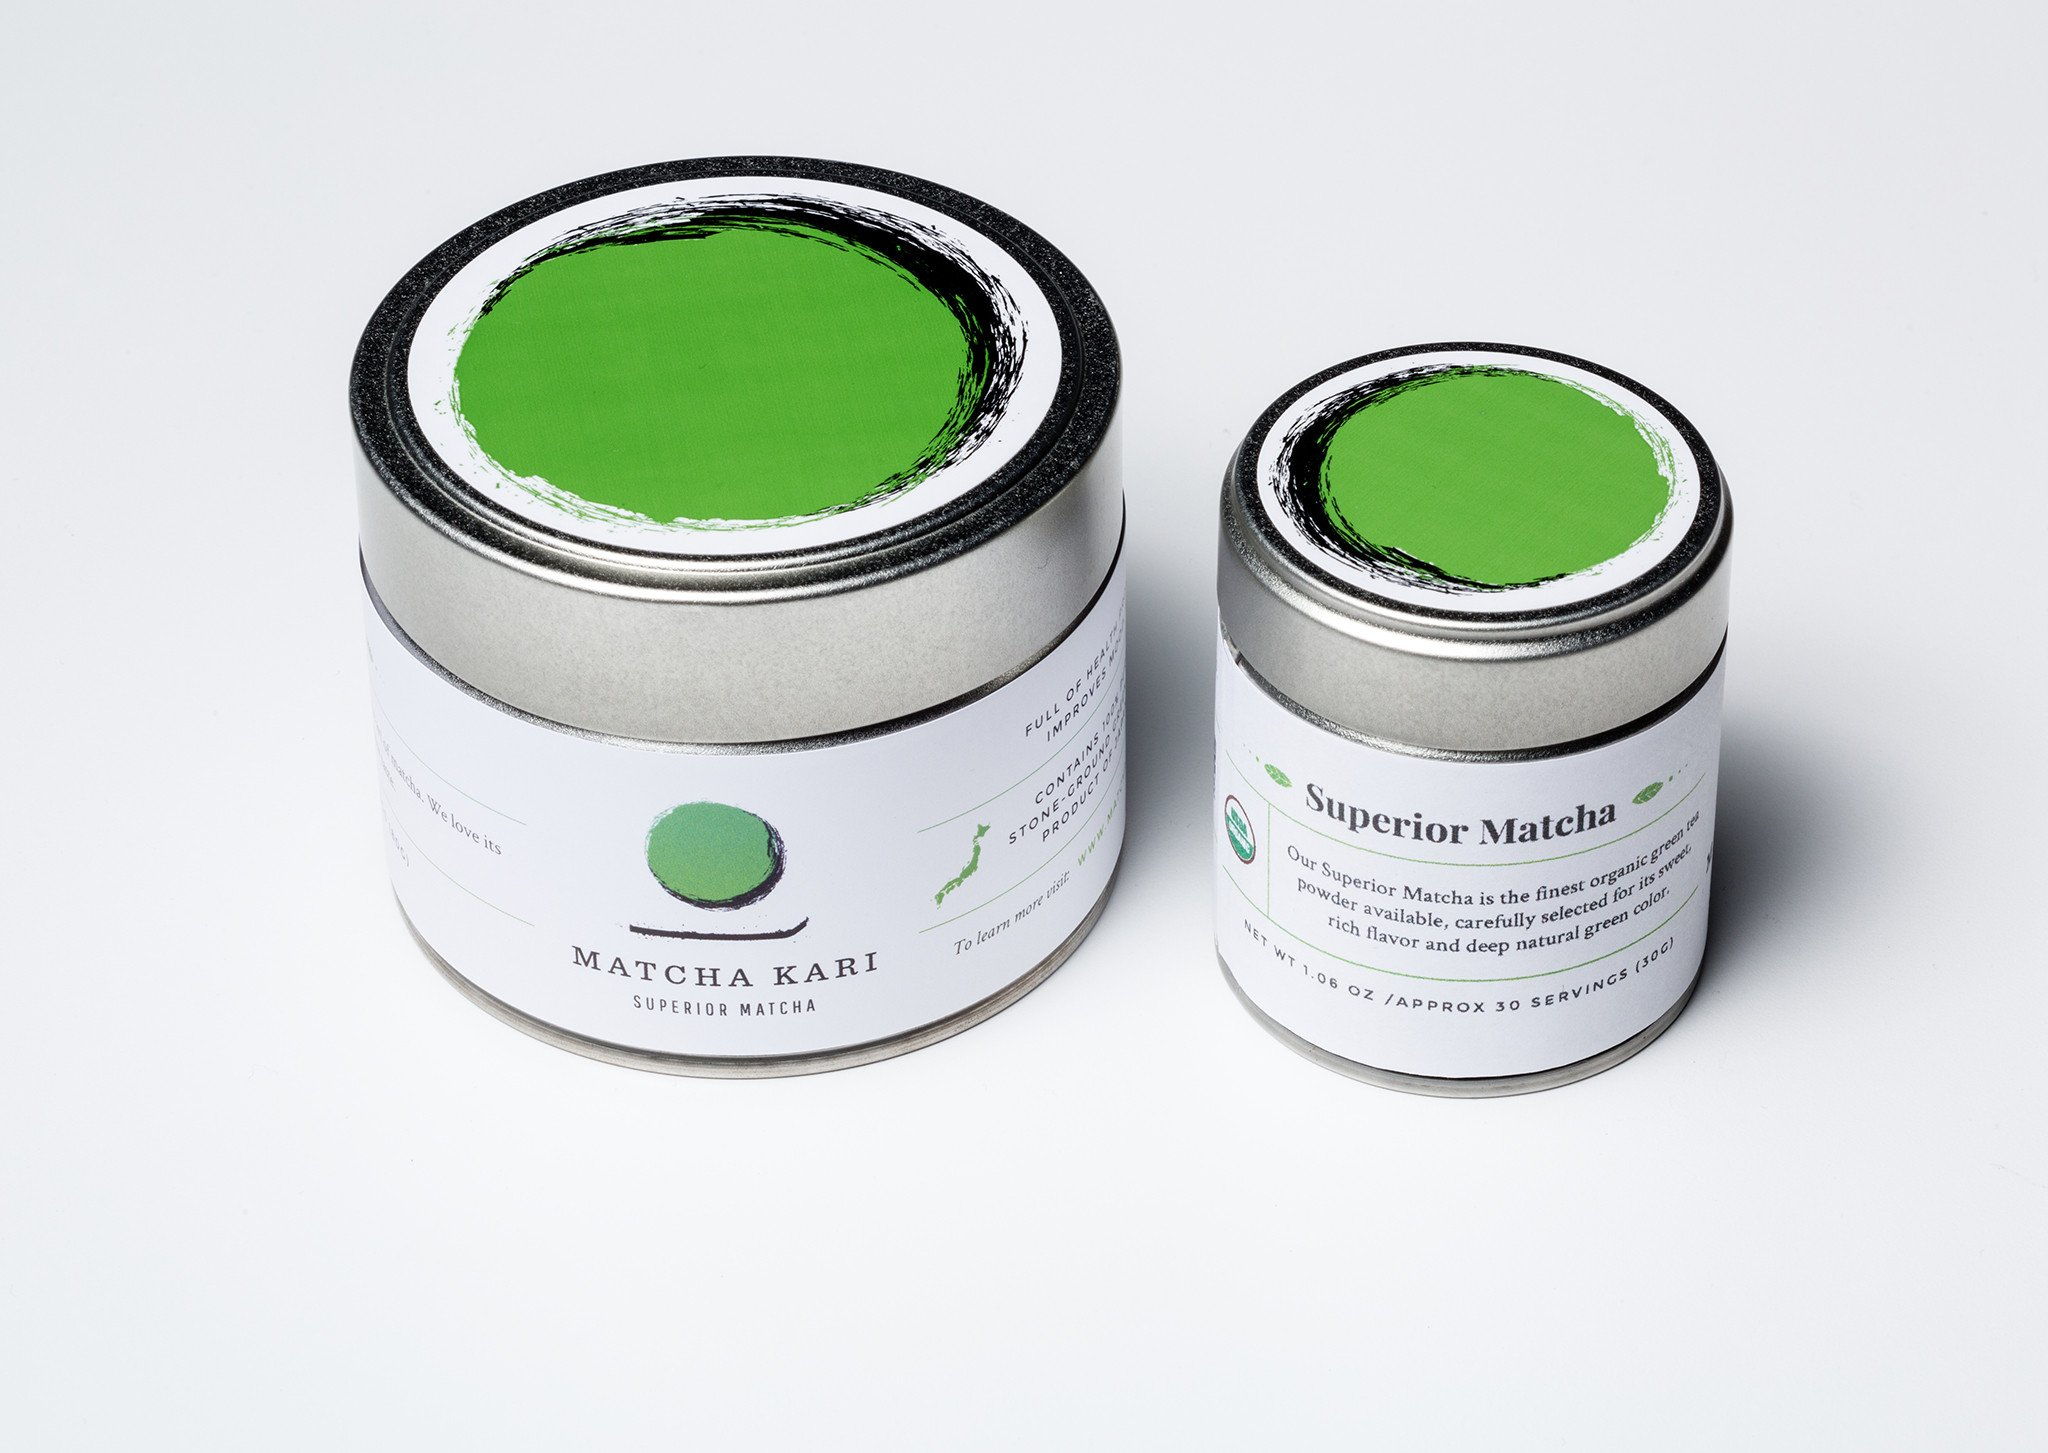 matchakari_products_superior_matcha_packaging-1.jpg